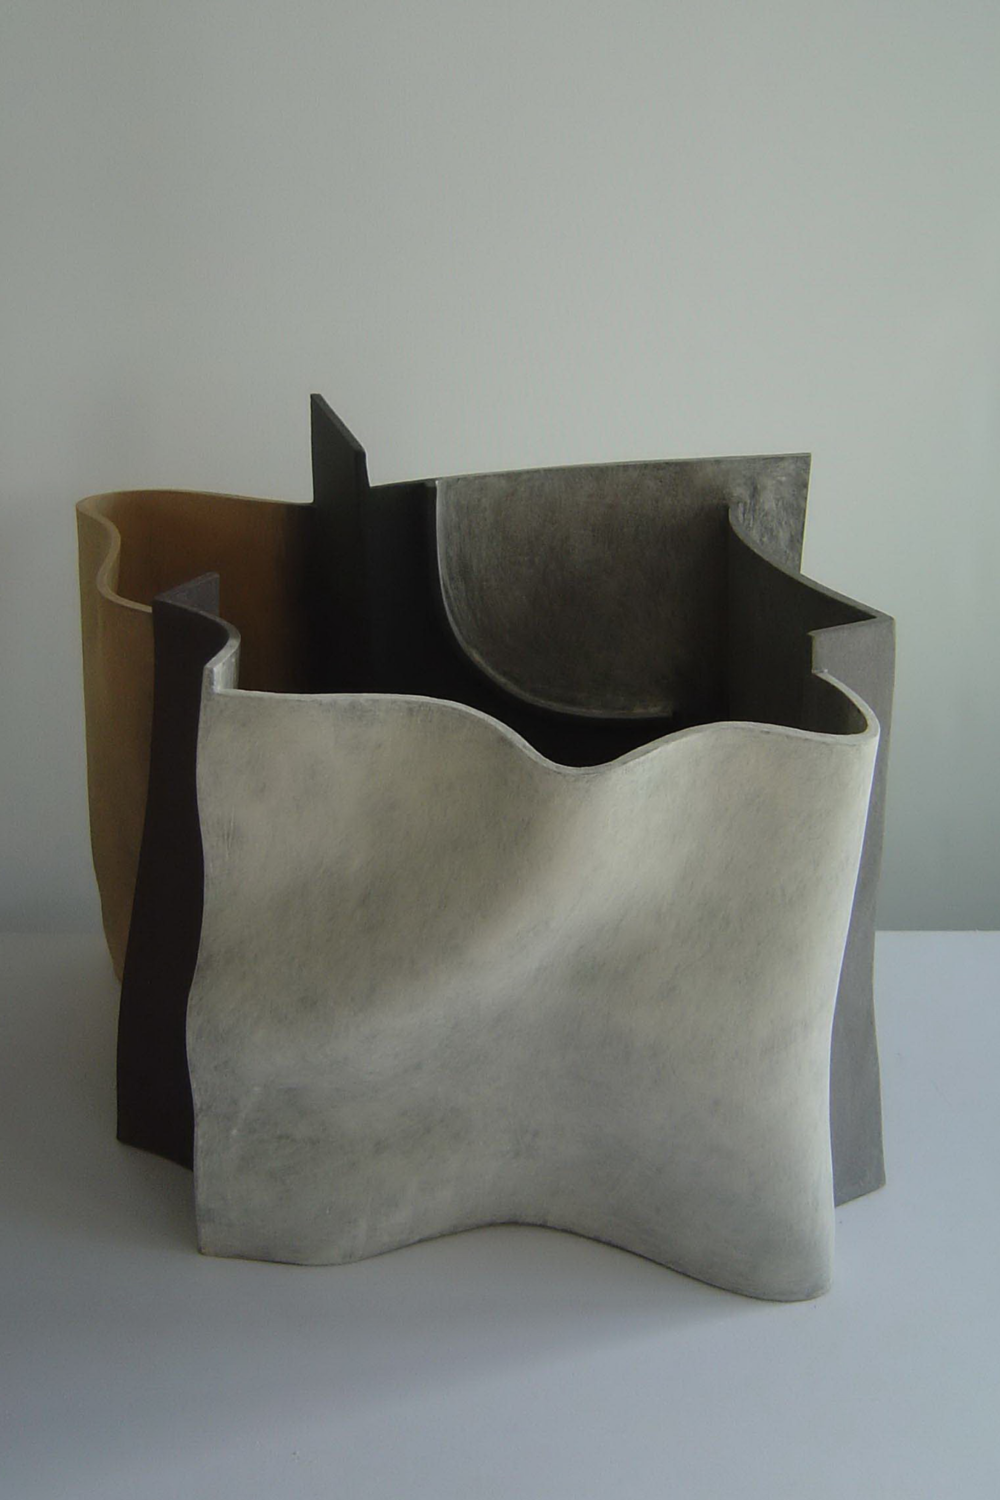 Straight no chaser, 2006, 32cm high